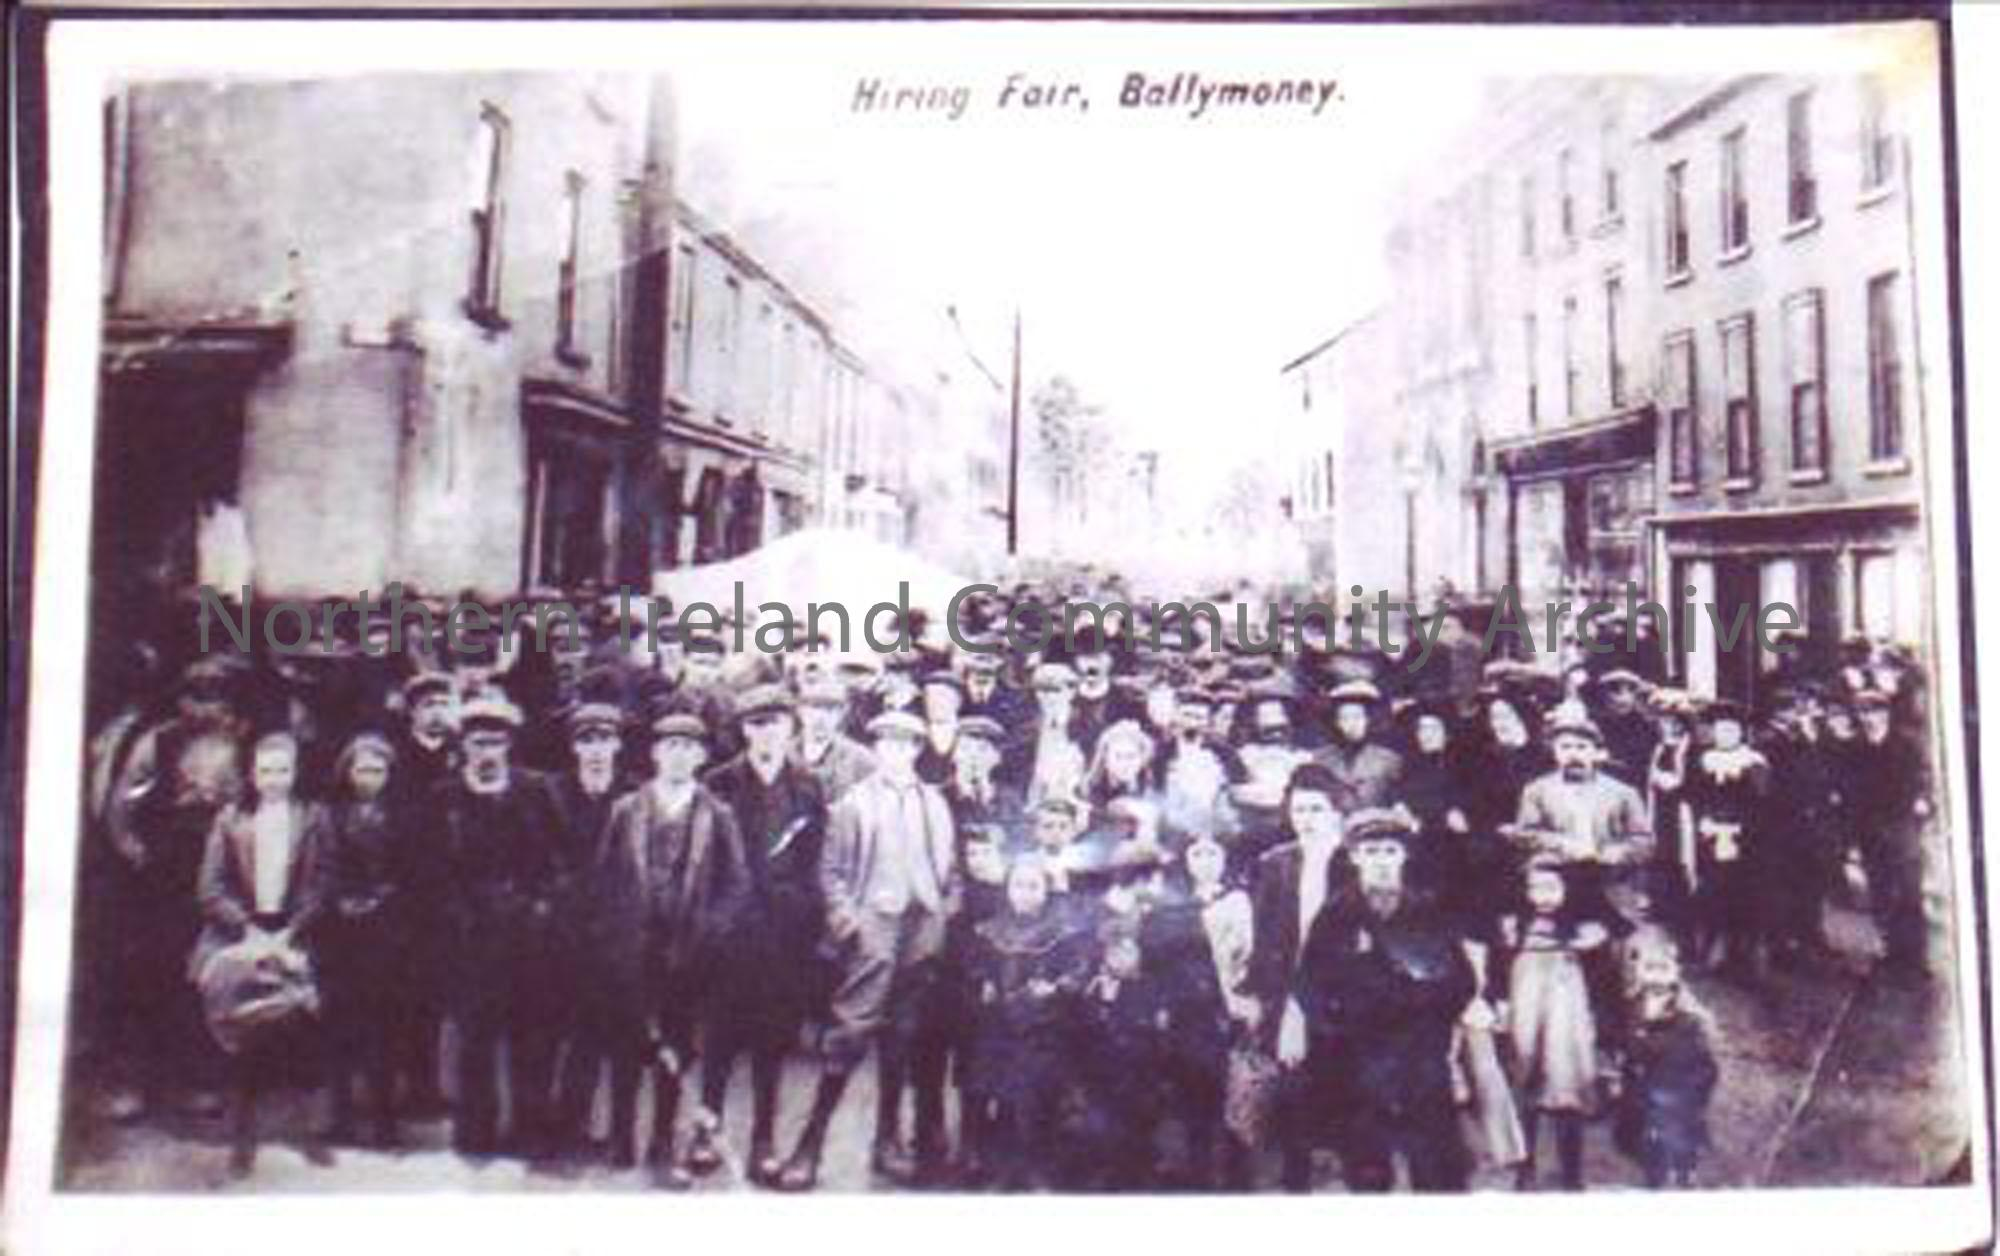 Ballymoney Hiring Fair (2932)